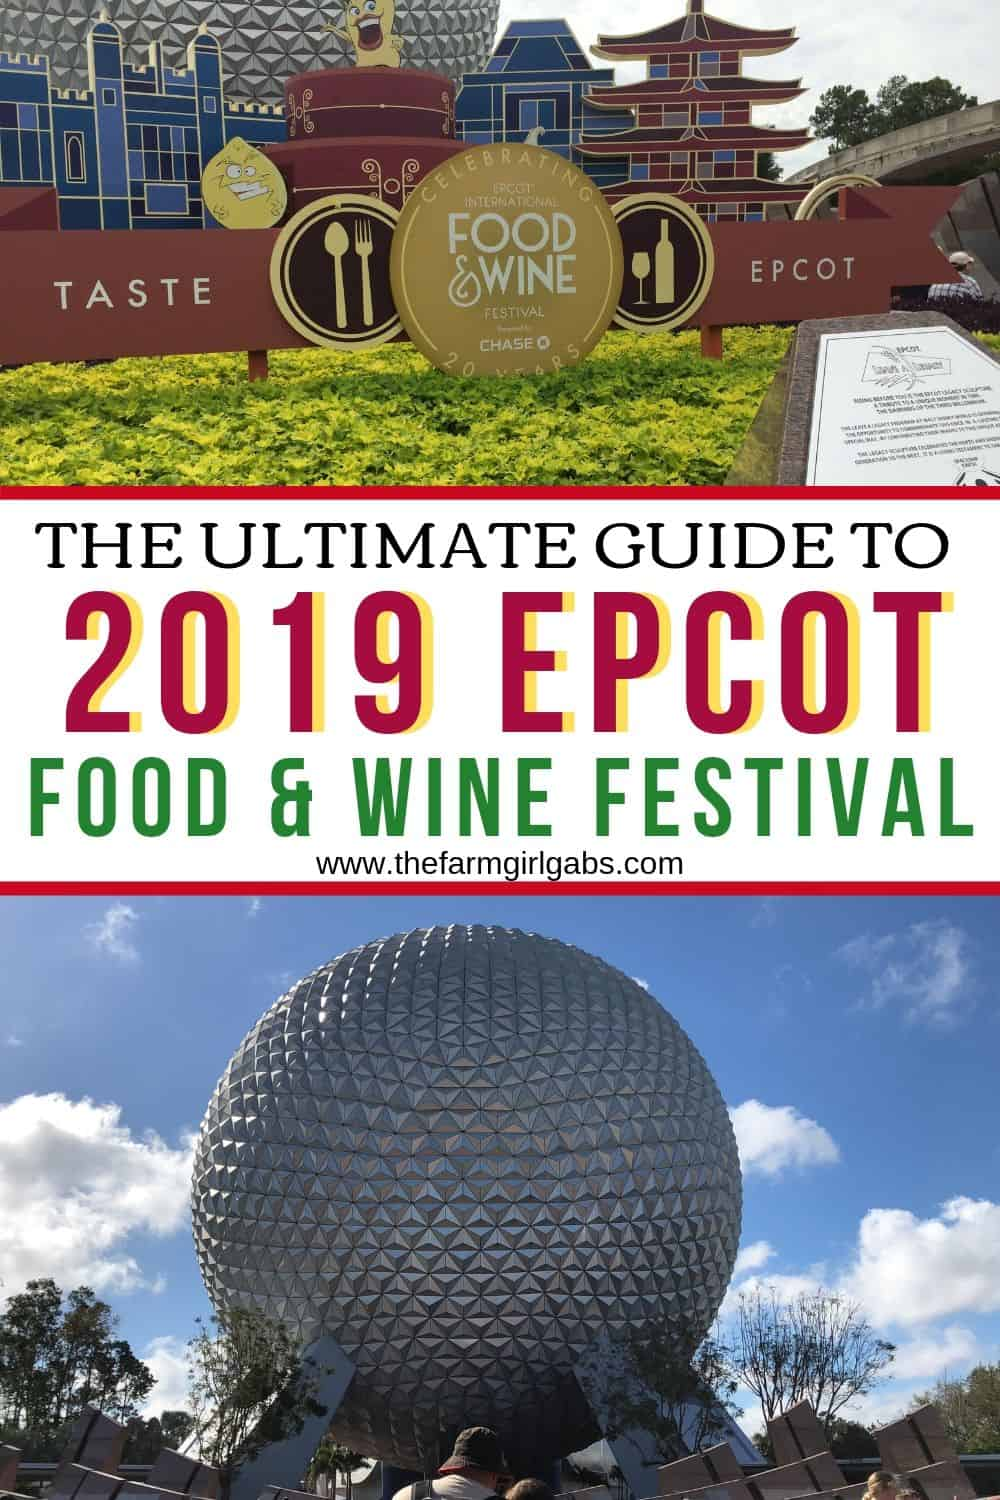 Planning a trip to Epcot's Food and Wine Festival this year? Here are a few top Tips For Visiting The Epcot Food And Wine Festival at Walt Disney World. This ultimate guide to the 2019 Epcot Food And Wine Festival will give you all the festival details and helpful Disney tips. #WaltDisneyWorld #Epcot #EpcotFoodAndWineFestival #Disney #DisneySide #DisneyTravel #TravelTips #EpcotFlowerAndGardenFestival